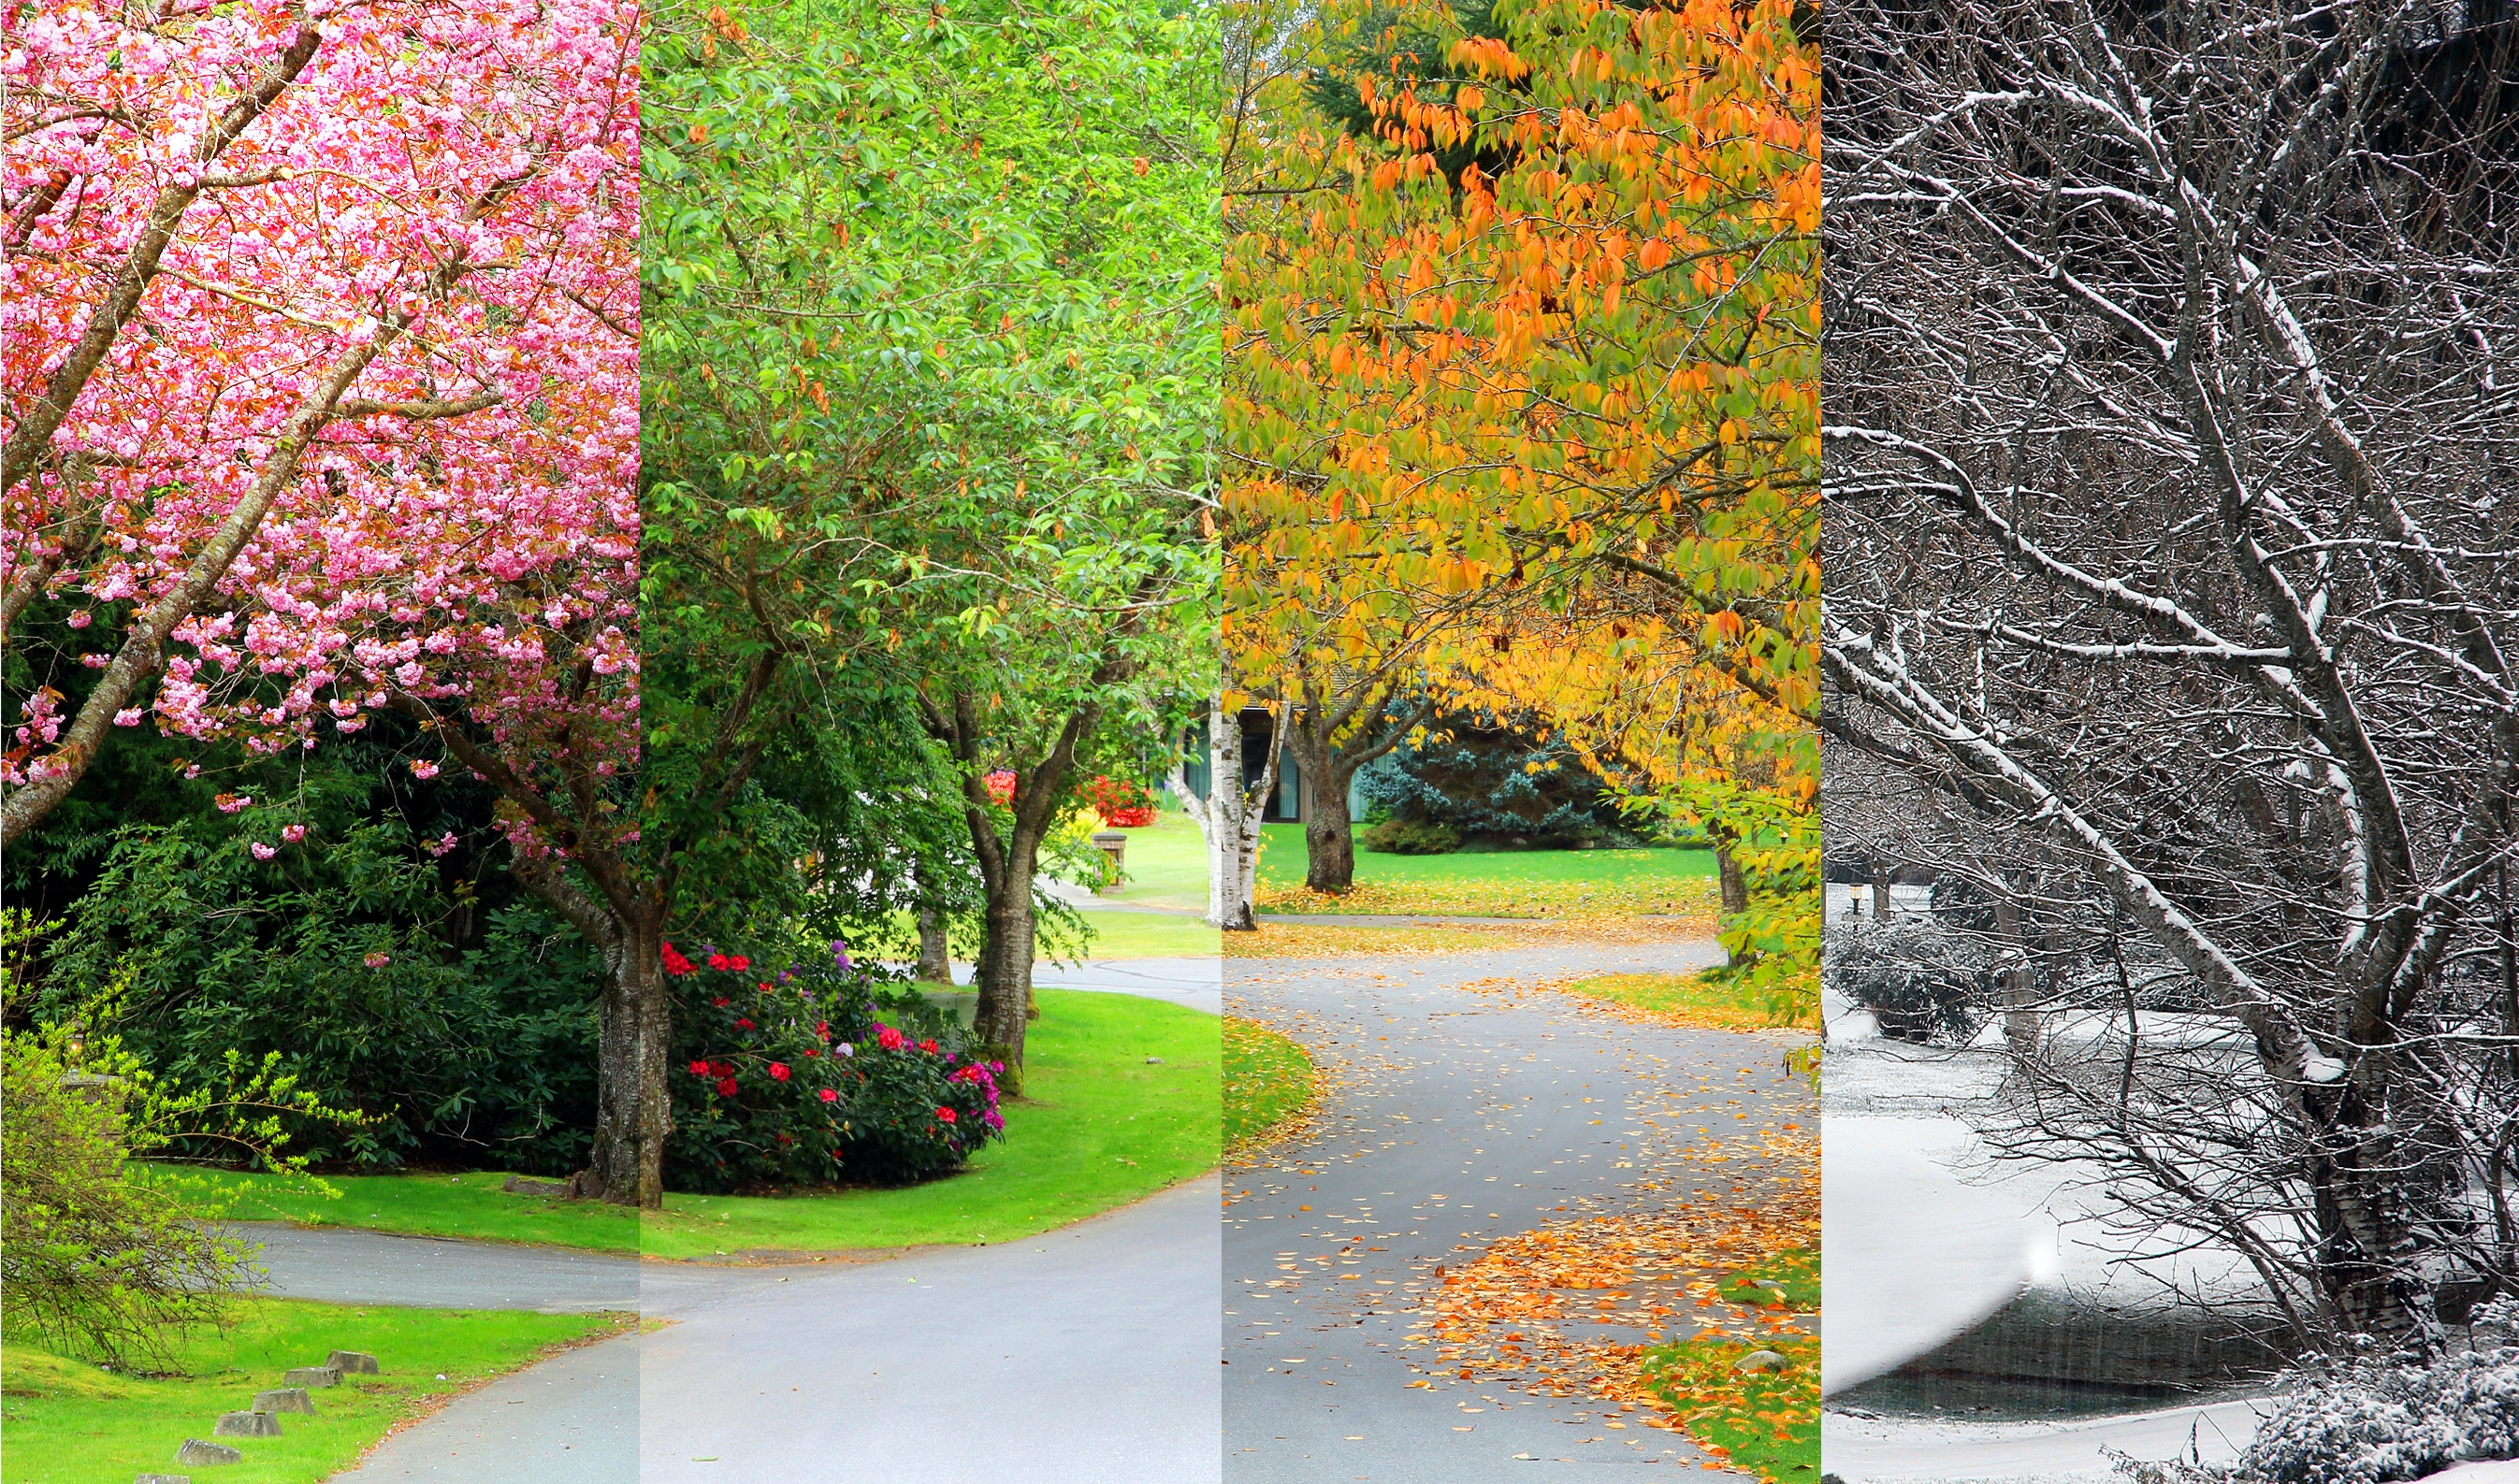 Curious Kids: why are there different seasons at specific times of the year?